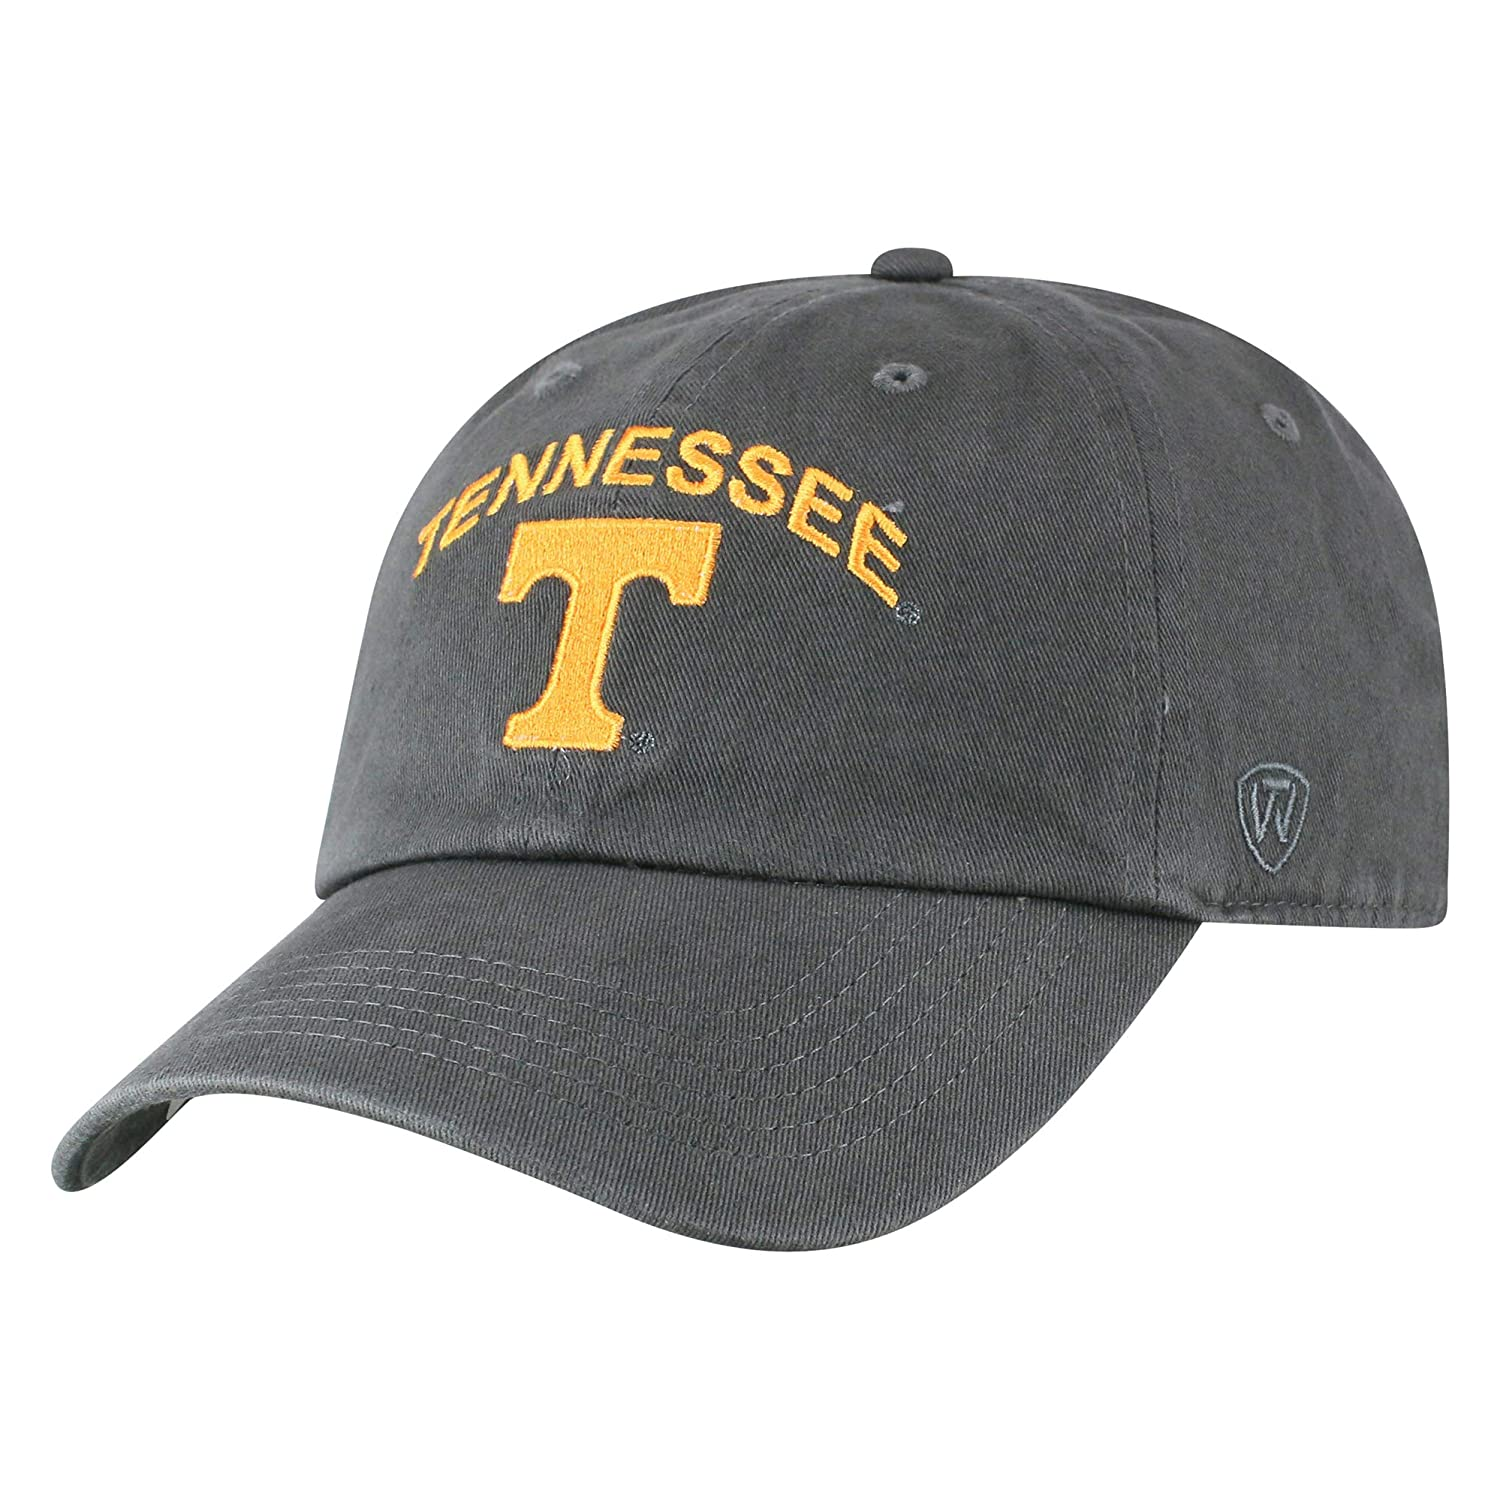 Top of the World NCAA Men's Hat Adjustable Relaxed Fit Charcoal Arch Elite Fan Shop